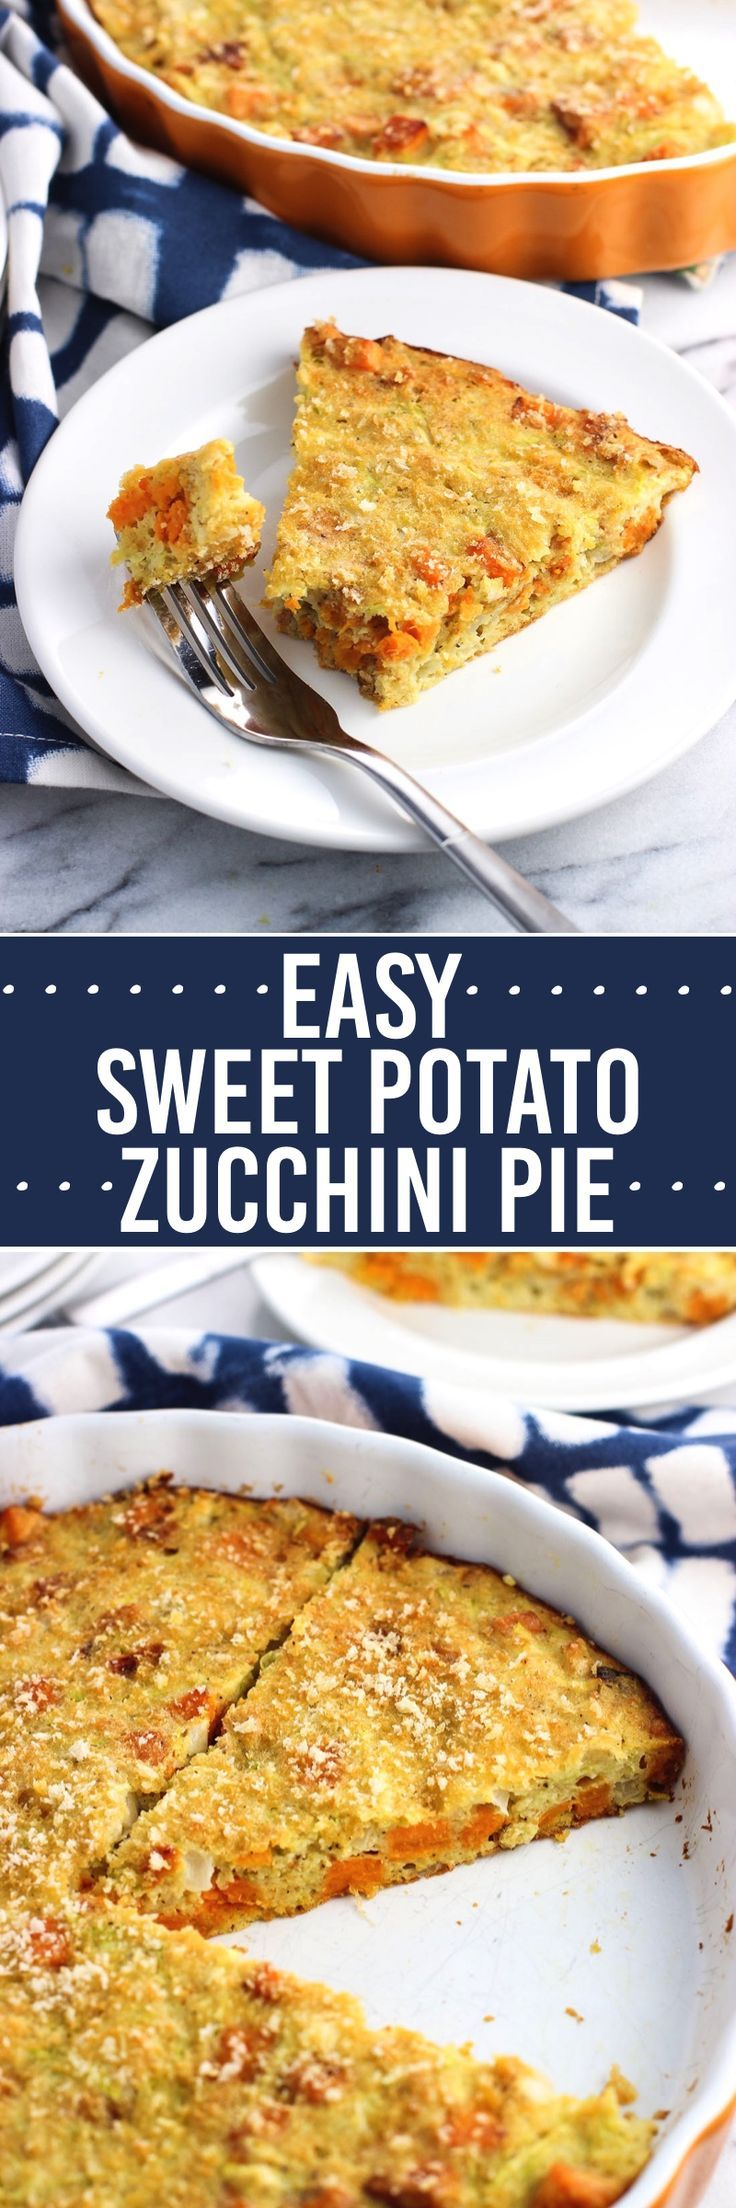 This easy sweet potato zucchini pie recipe has sweet potato chunks, onion, and cheese. It makes its own crust as it bakes for a simple meal any time of day.